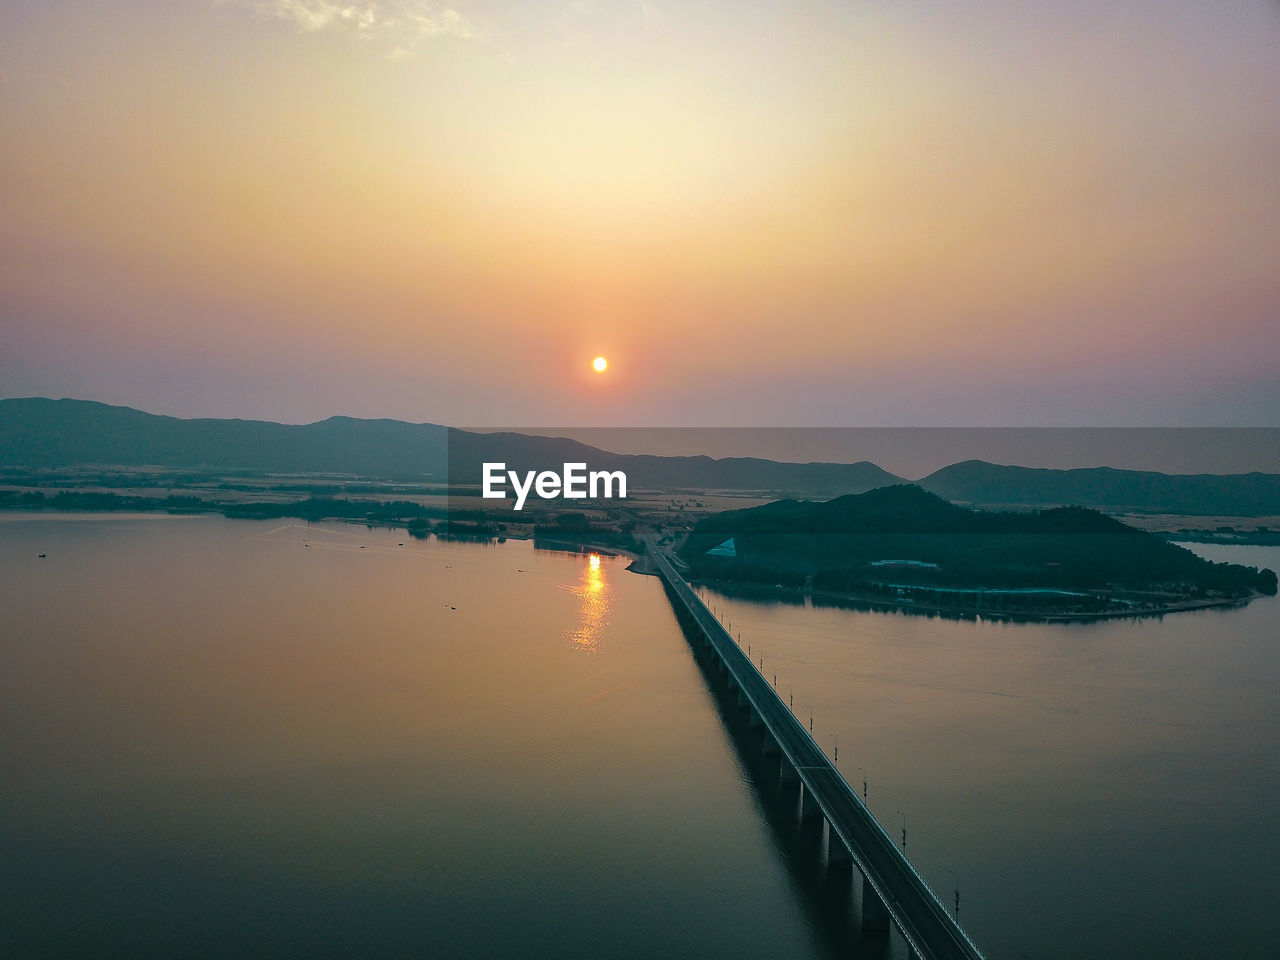 sky, water, sunset, scenics - nature, mountain, beauty in nature, tranquil scene, tranquility, sun, reflection, nature, non-urban scene, idyllic, lake, no people, mountain range, orange color, sunlight, waterfront, outdoors